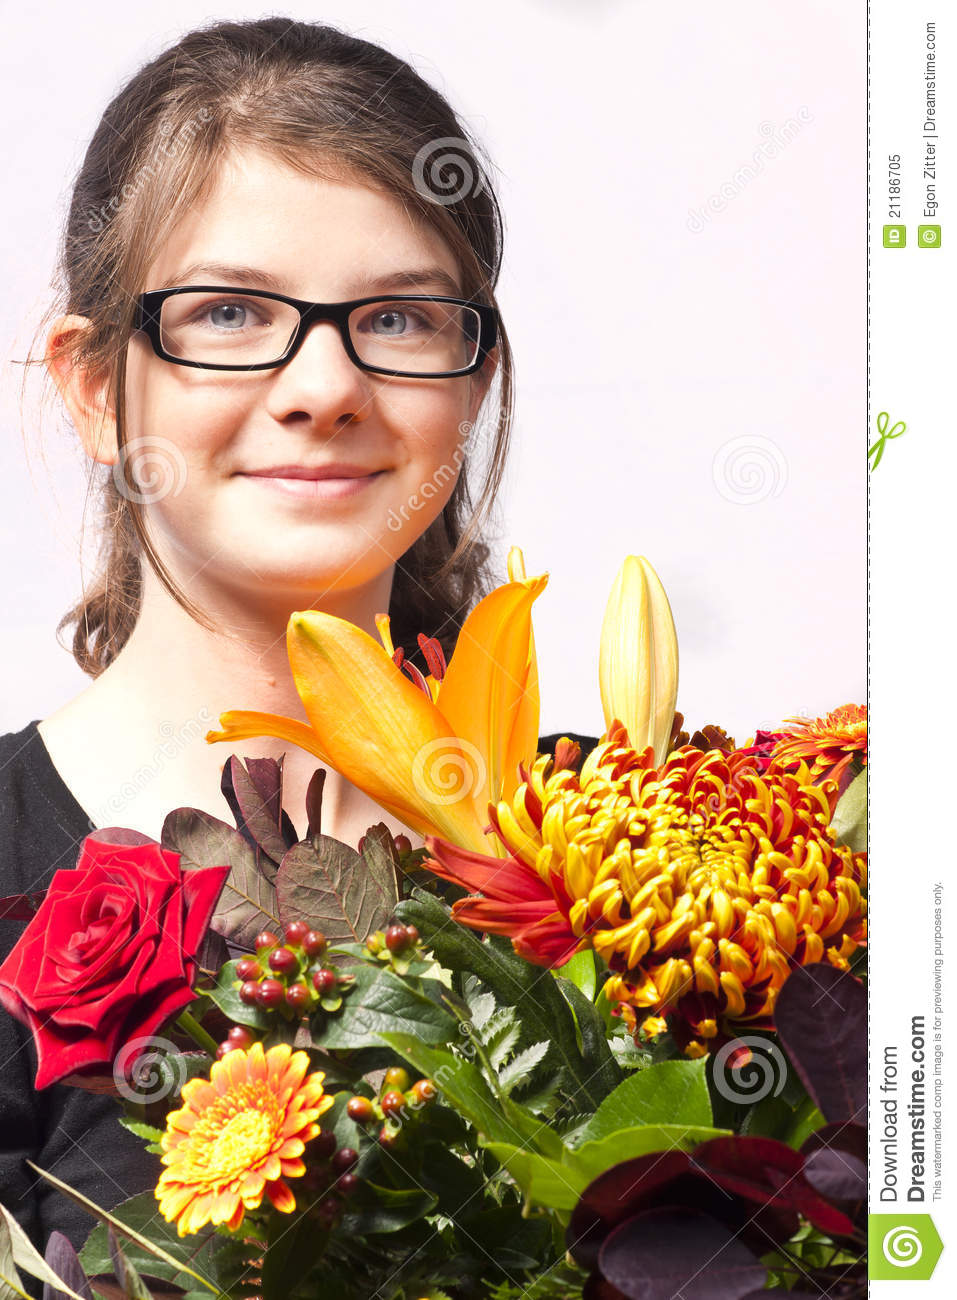 Girl with flowers smile